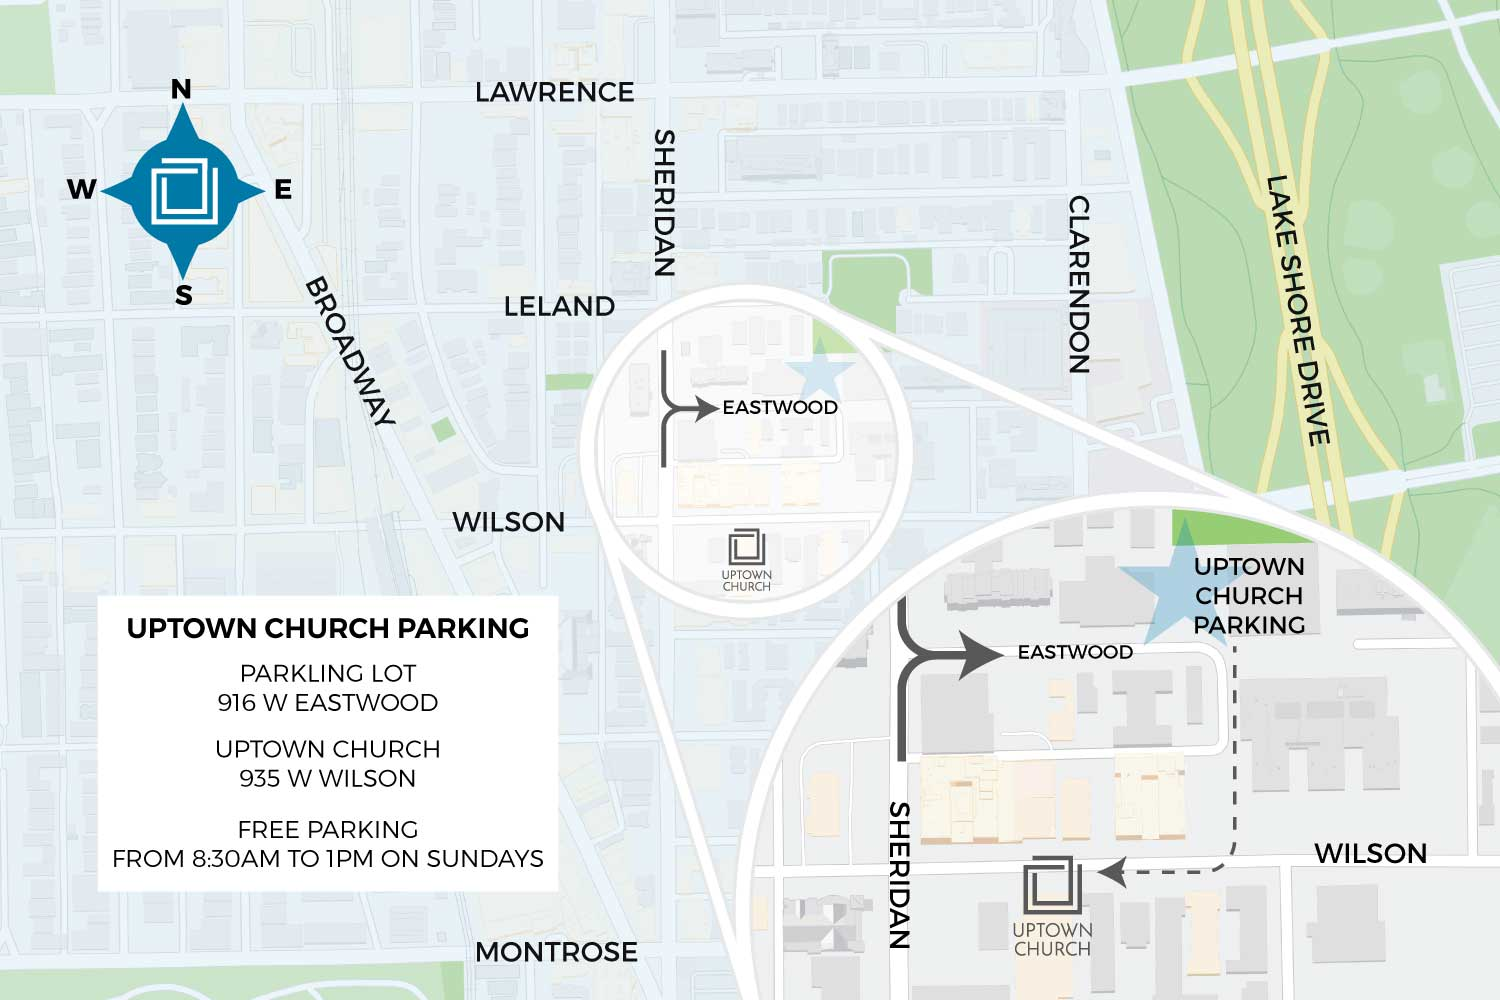 Uptown Church parking lot map